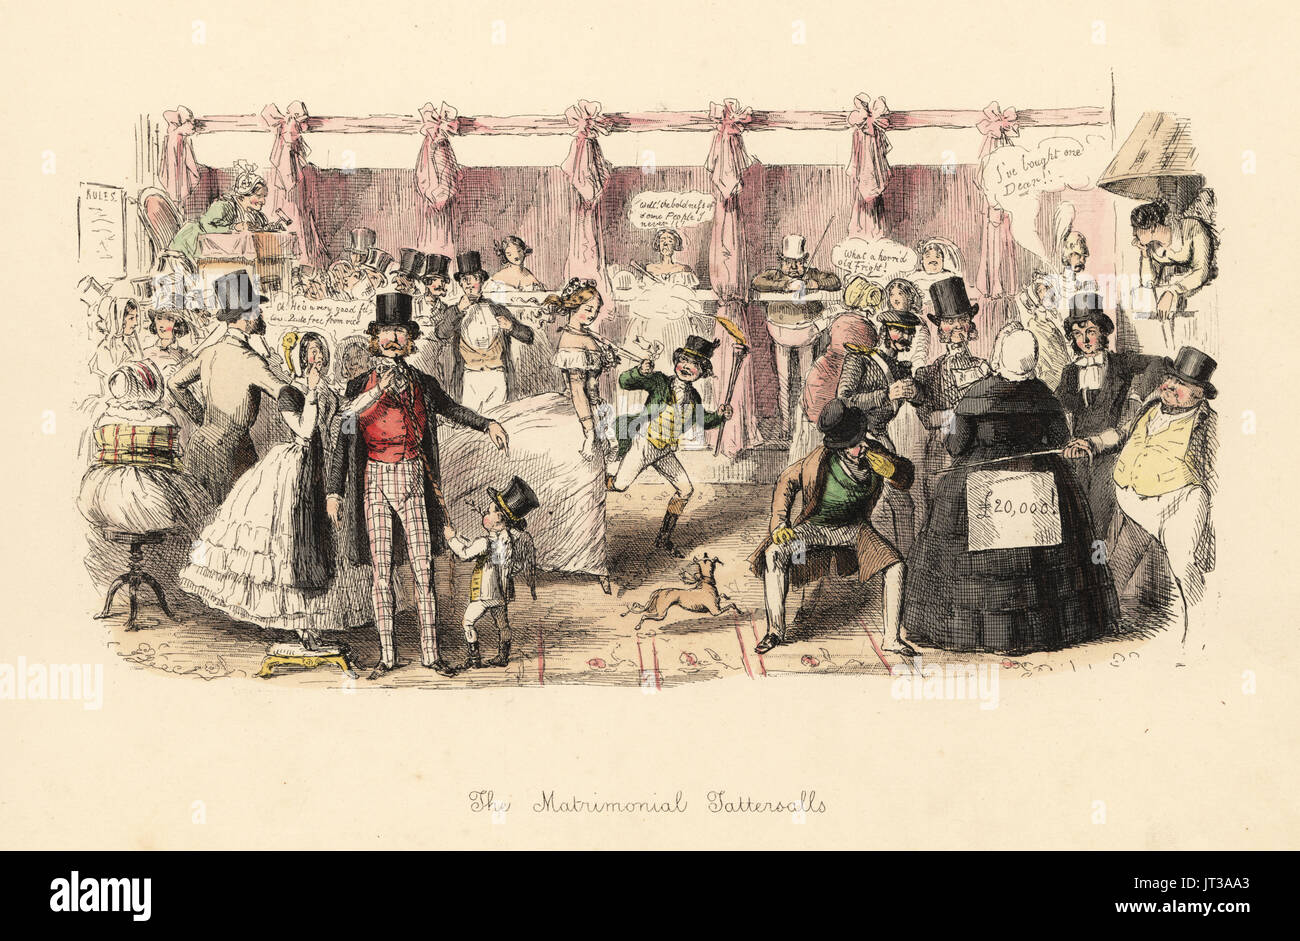 The Matrimonial Tattersalls, 1847. Satirical print of a market for brides and grooms in the style of Tattersalls horse market. Handcoloured etching by John Leech from Follies of the Year, from Punch's Pocket Books, Bradbury, London, 1864. - Stock Image